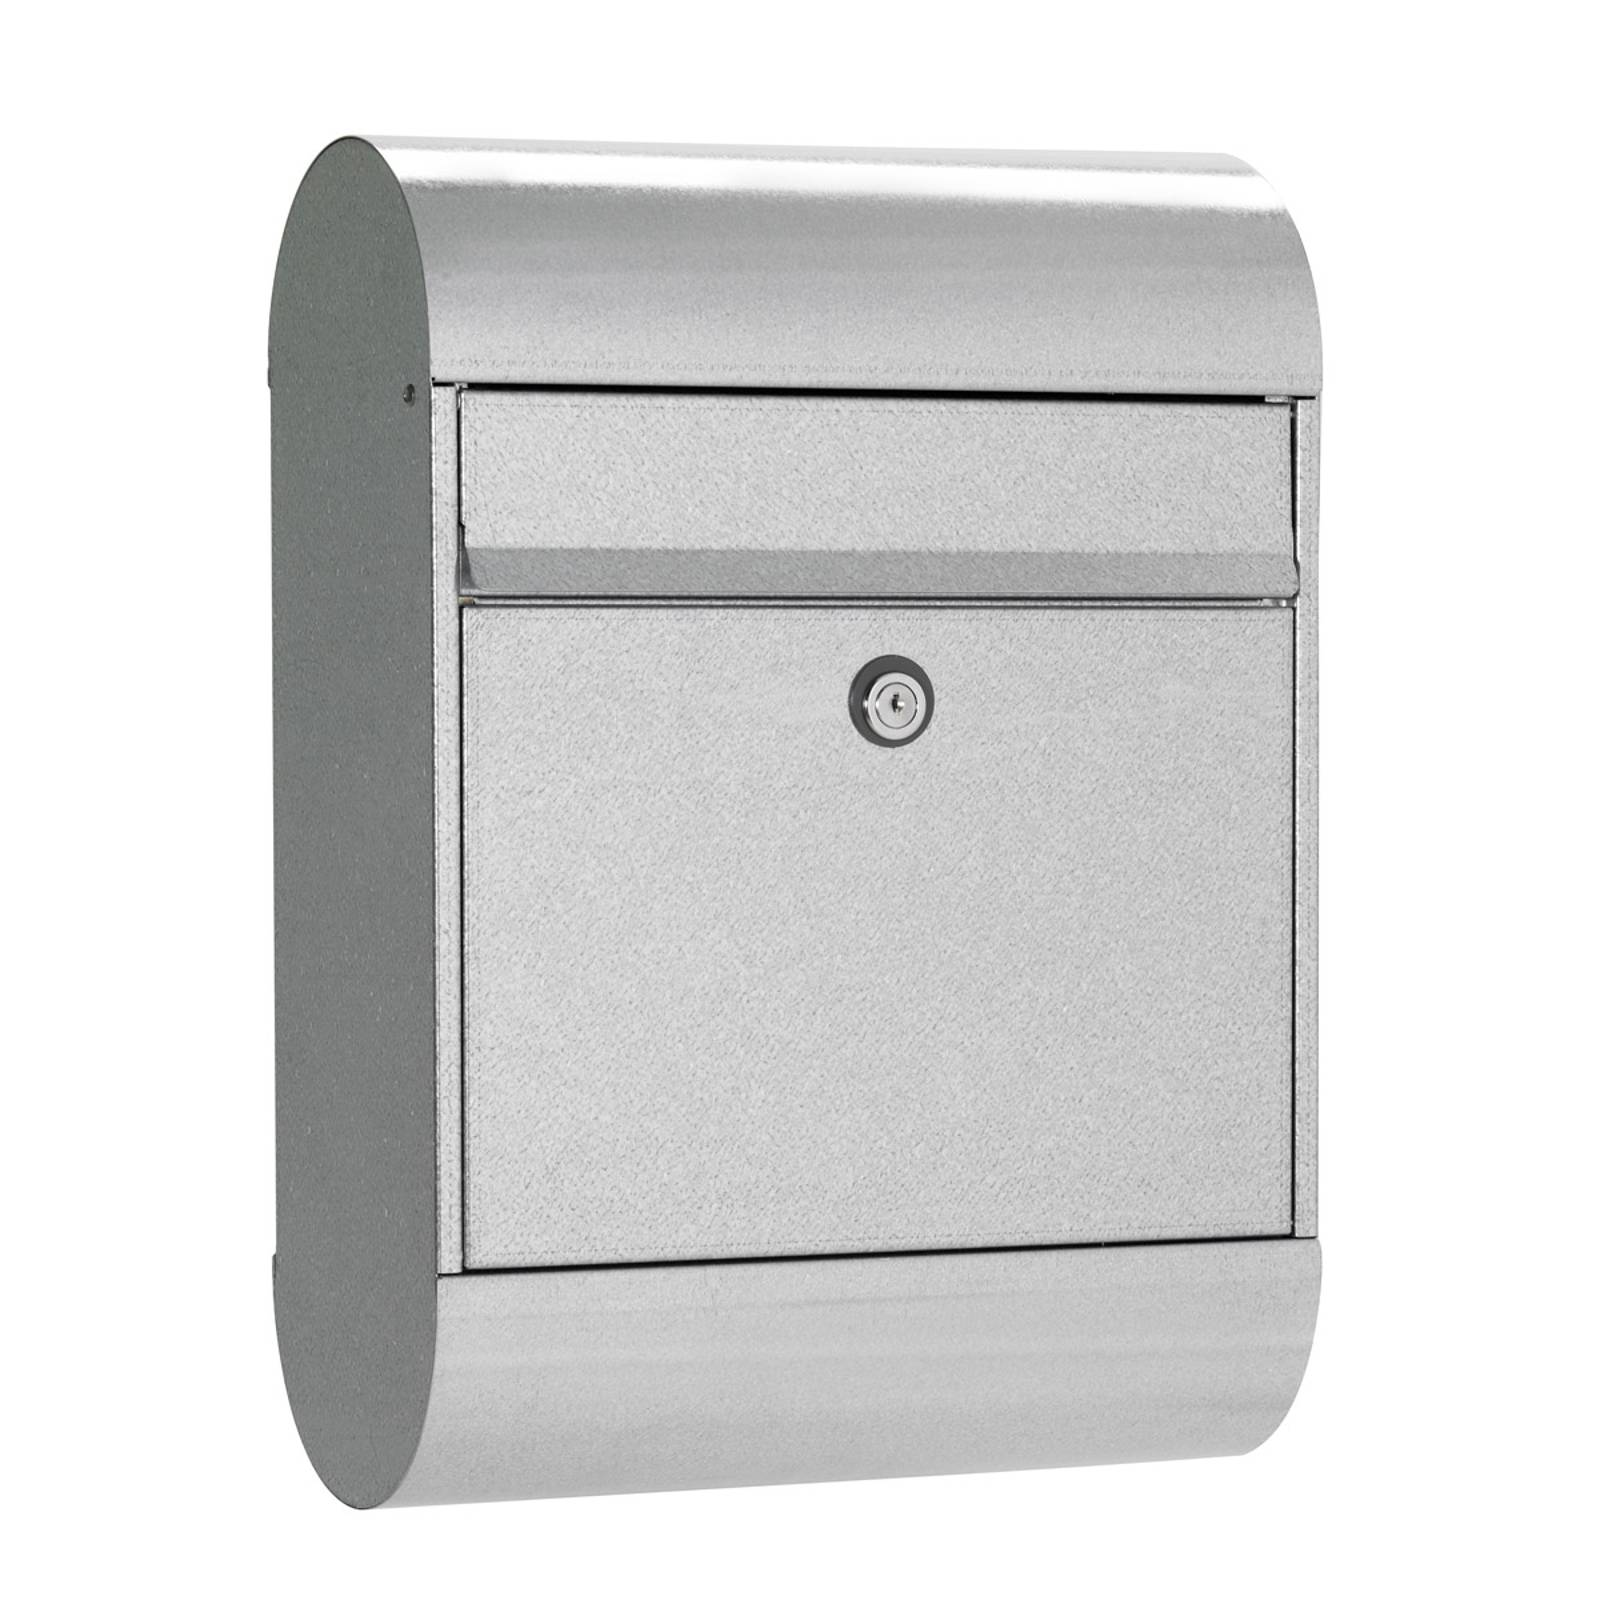 Scandinavian letterbox 6000, steel from Juliana